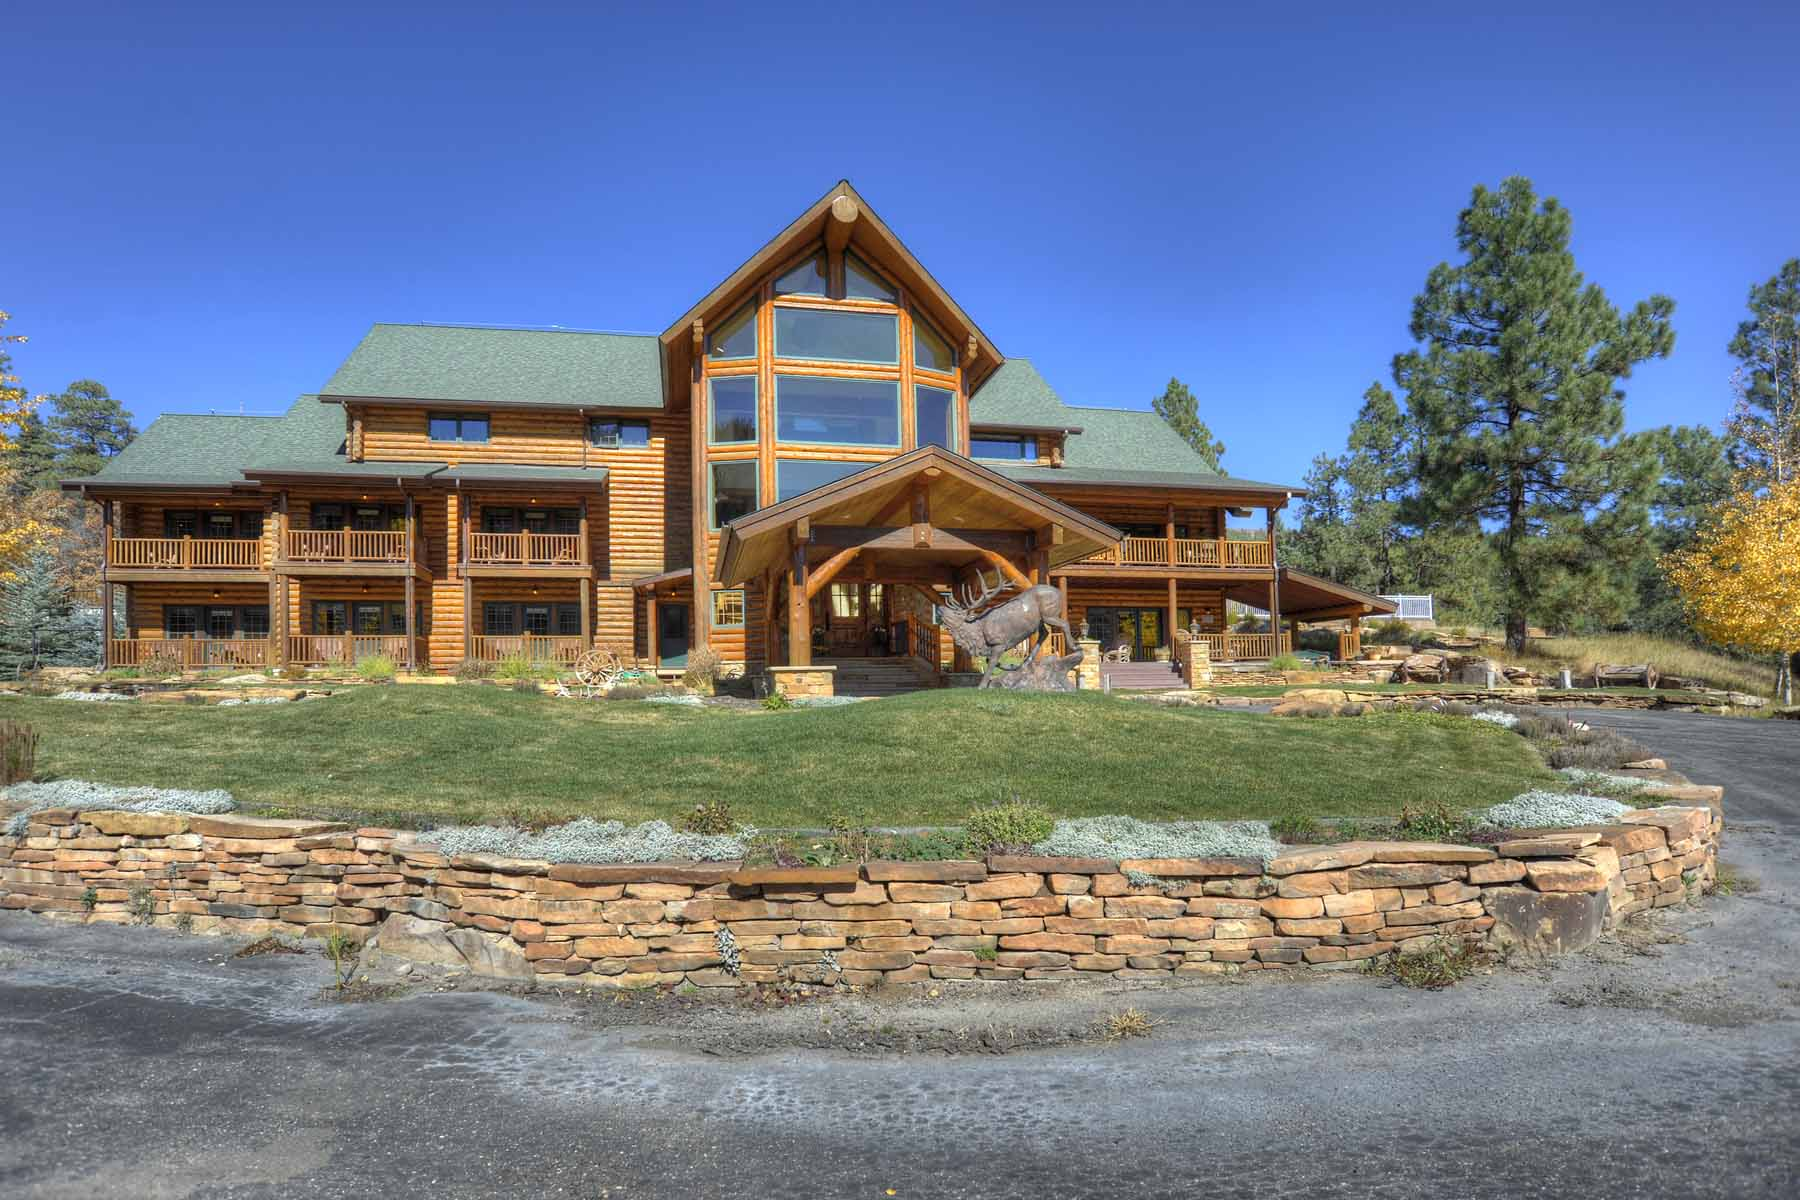 Casa Unifamiliar por un Venta en Retreat at Thunder Ridge 14688 CR 240 Durango, Colorado 81301 Estados Unidos